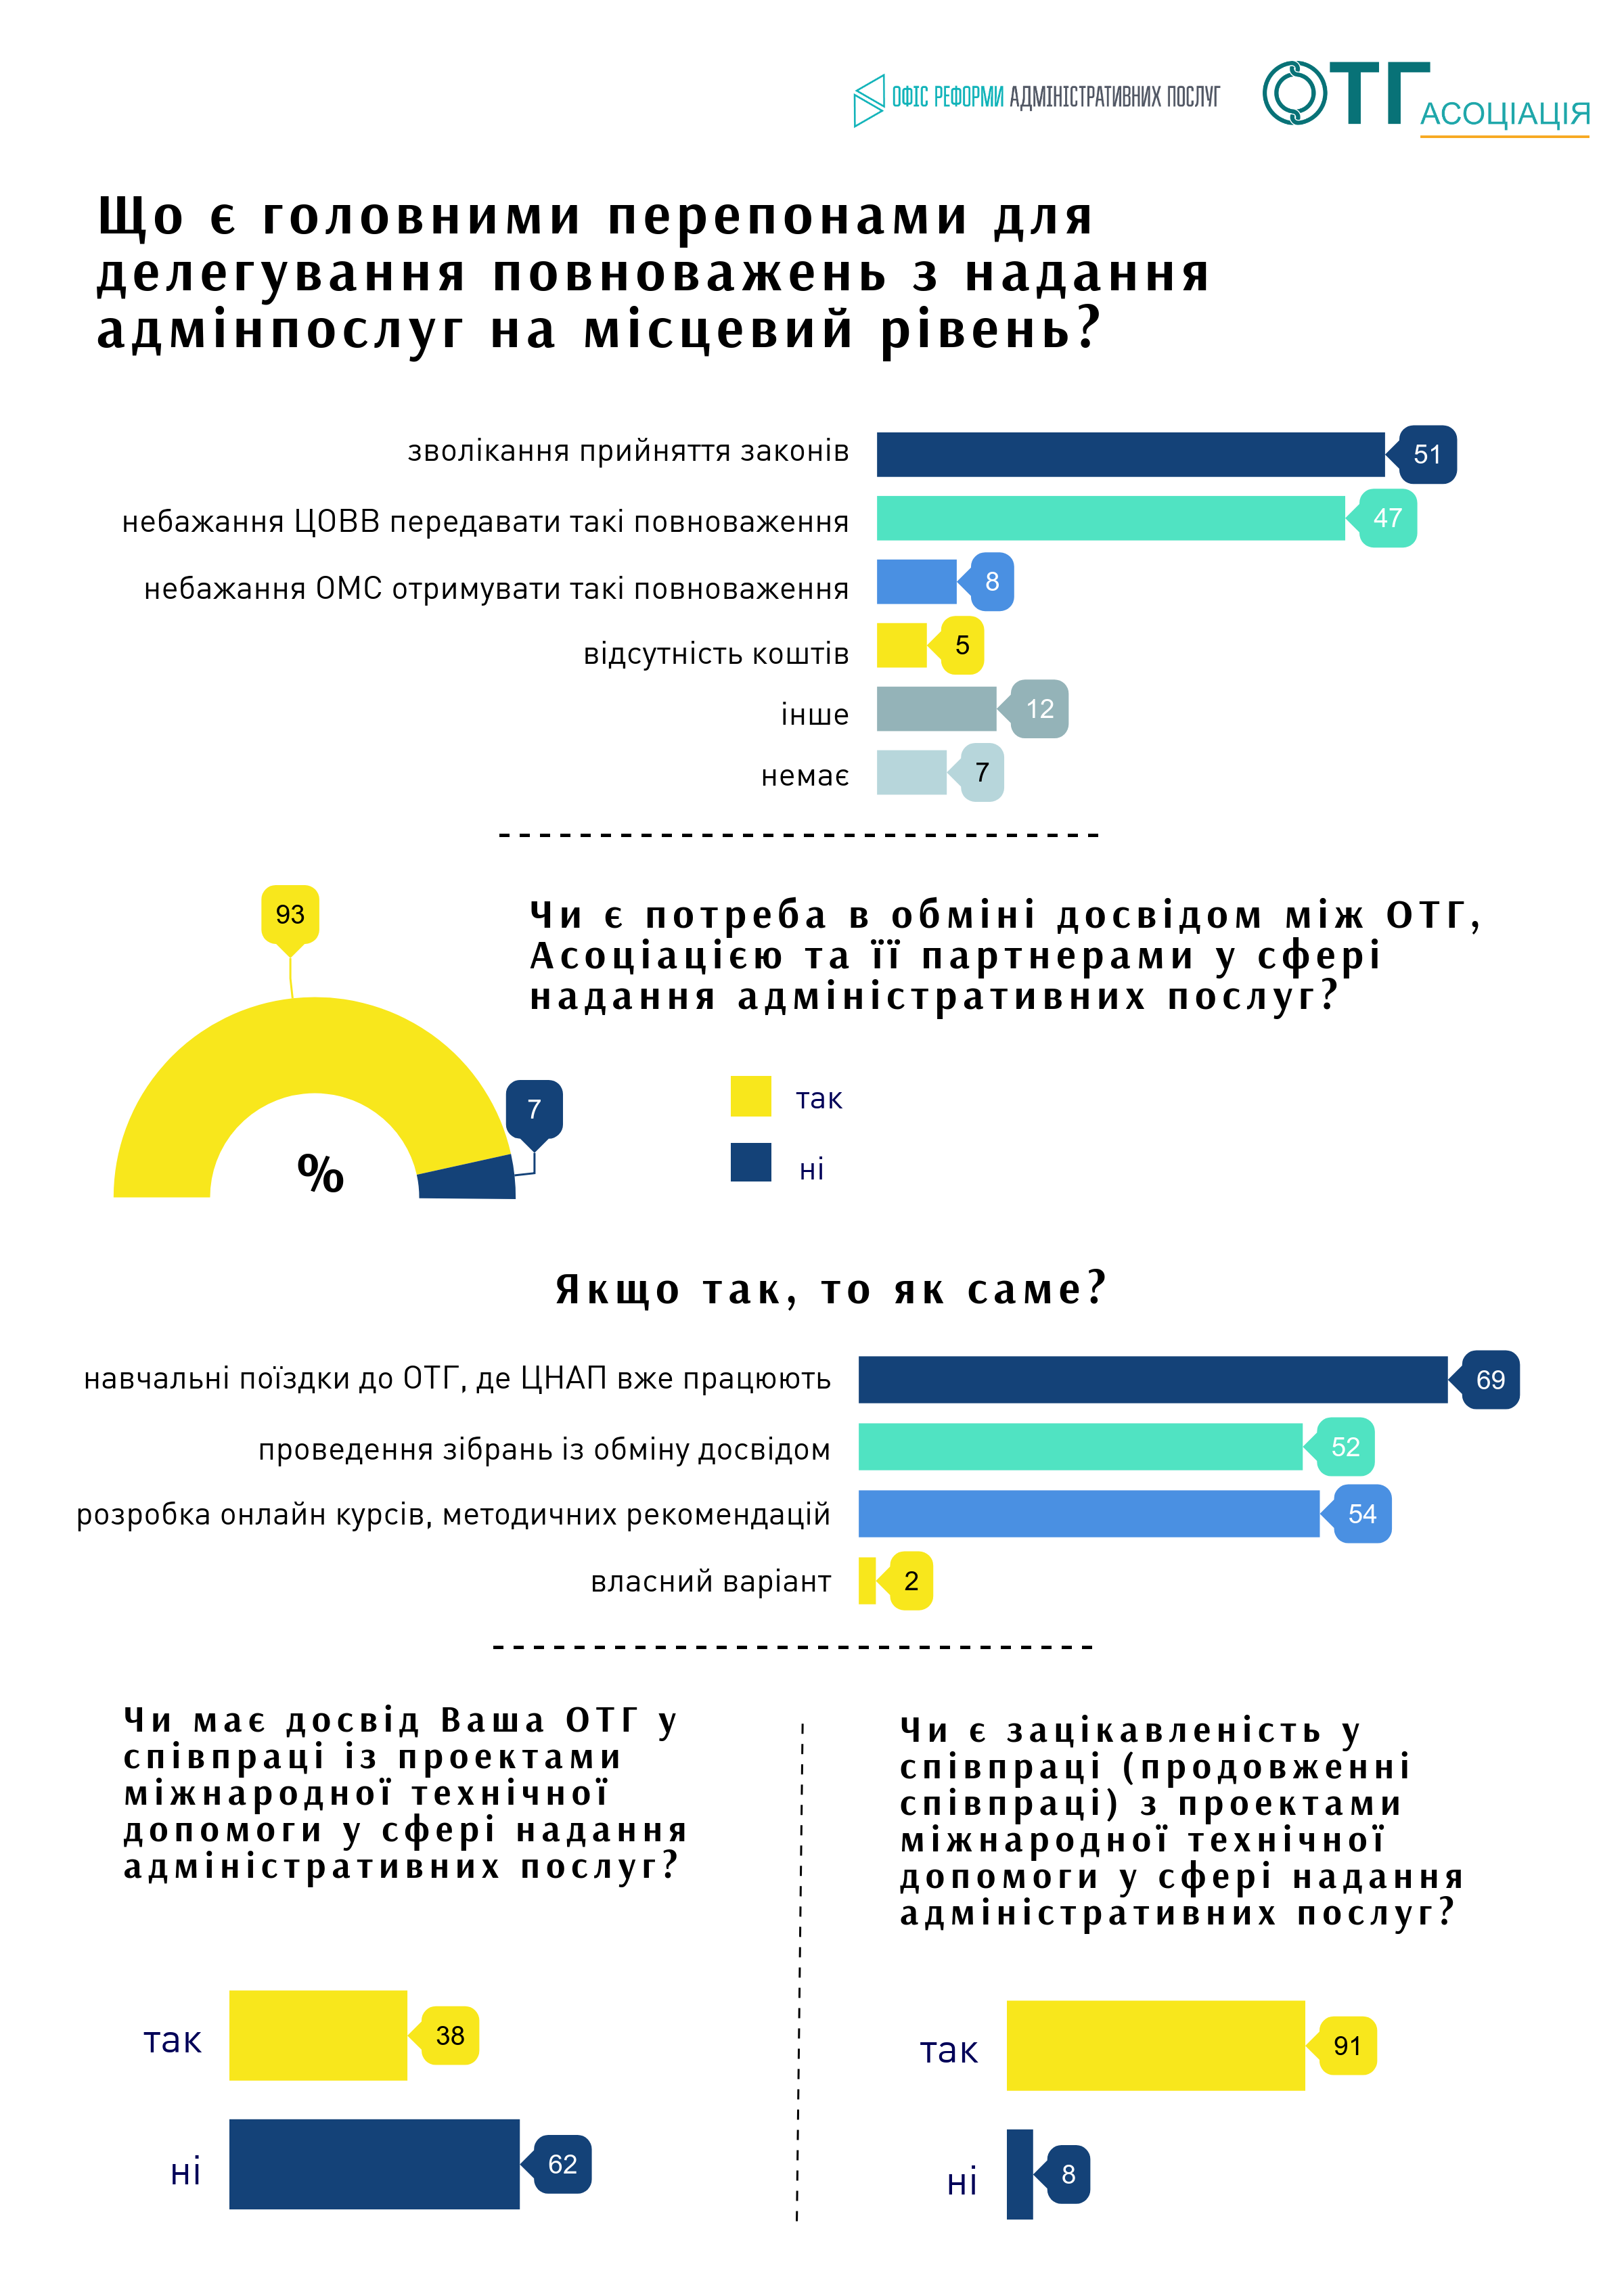 Organisation of administrative service delivery in AH: survey results. May 2019